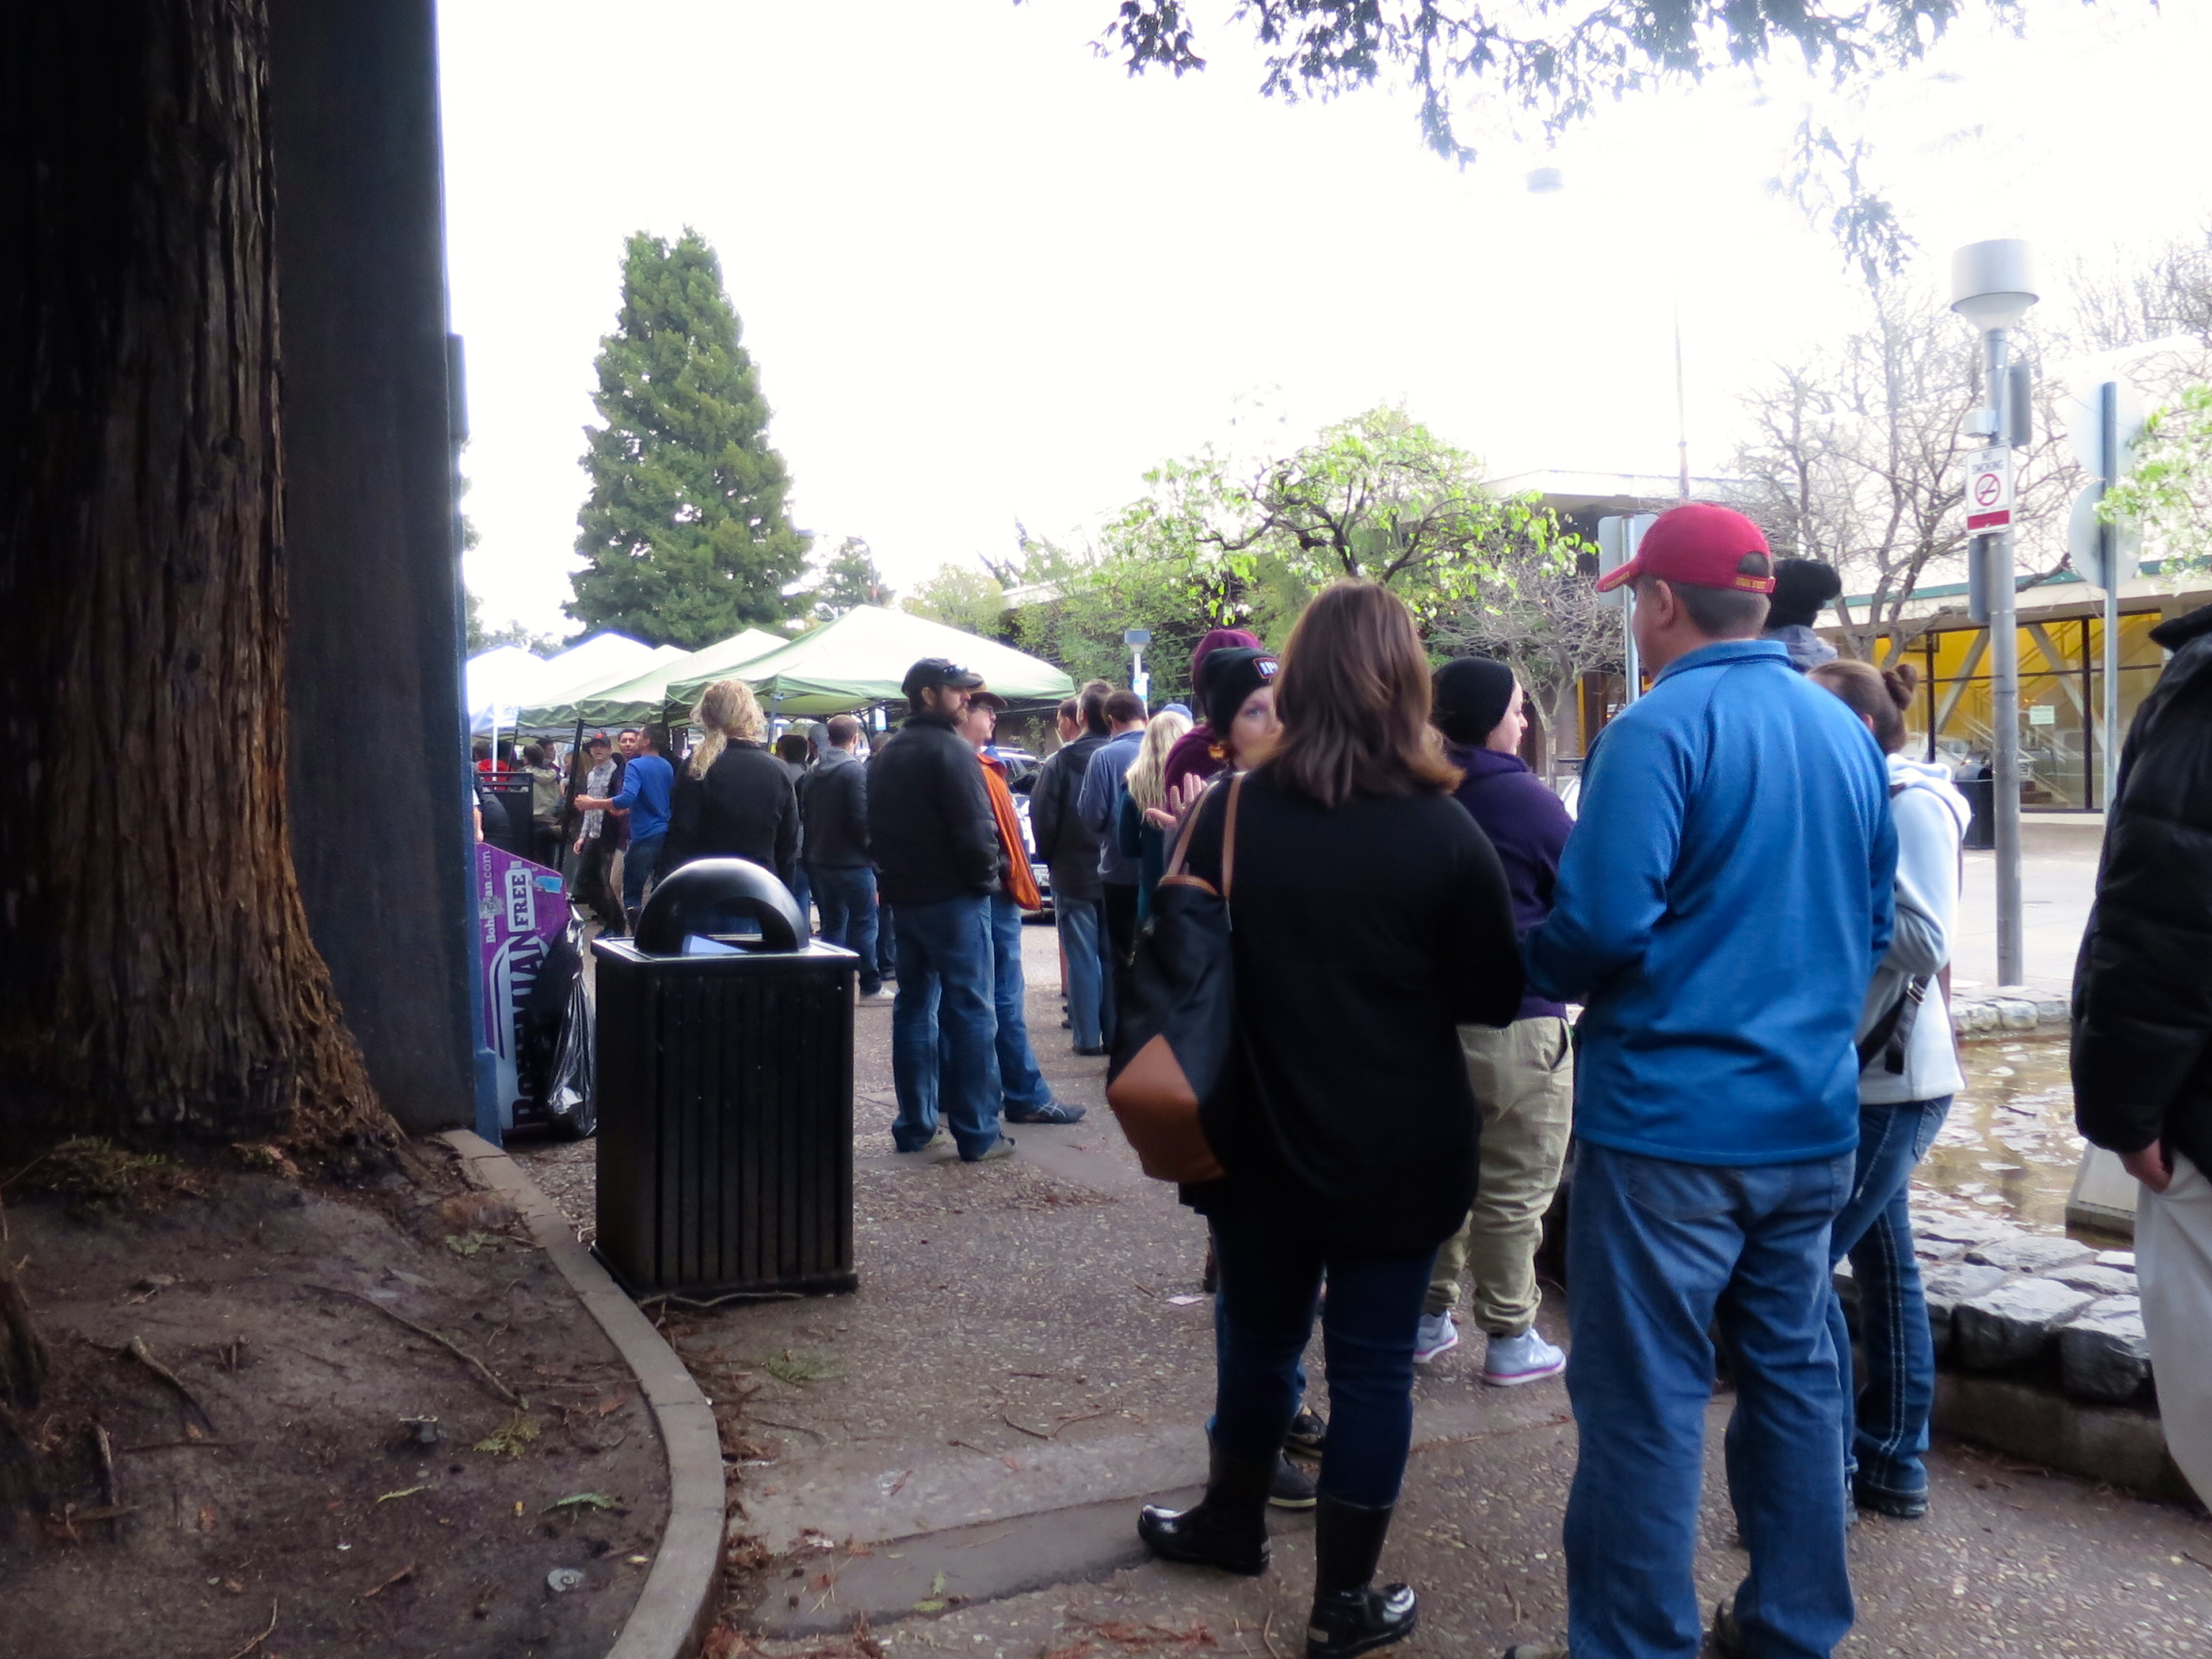 Very long lines for Pliny the Younger!